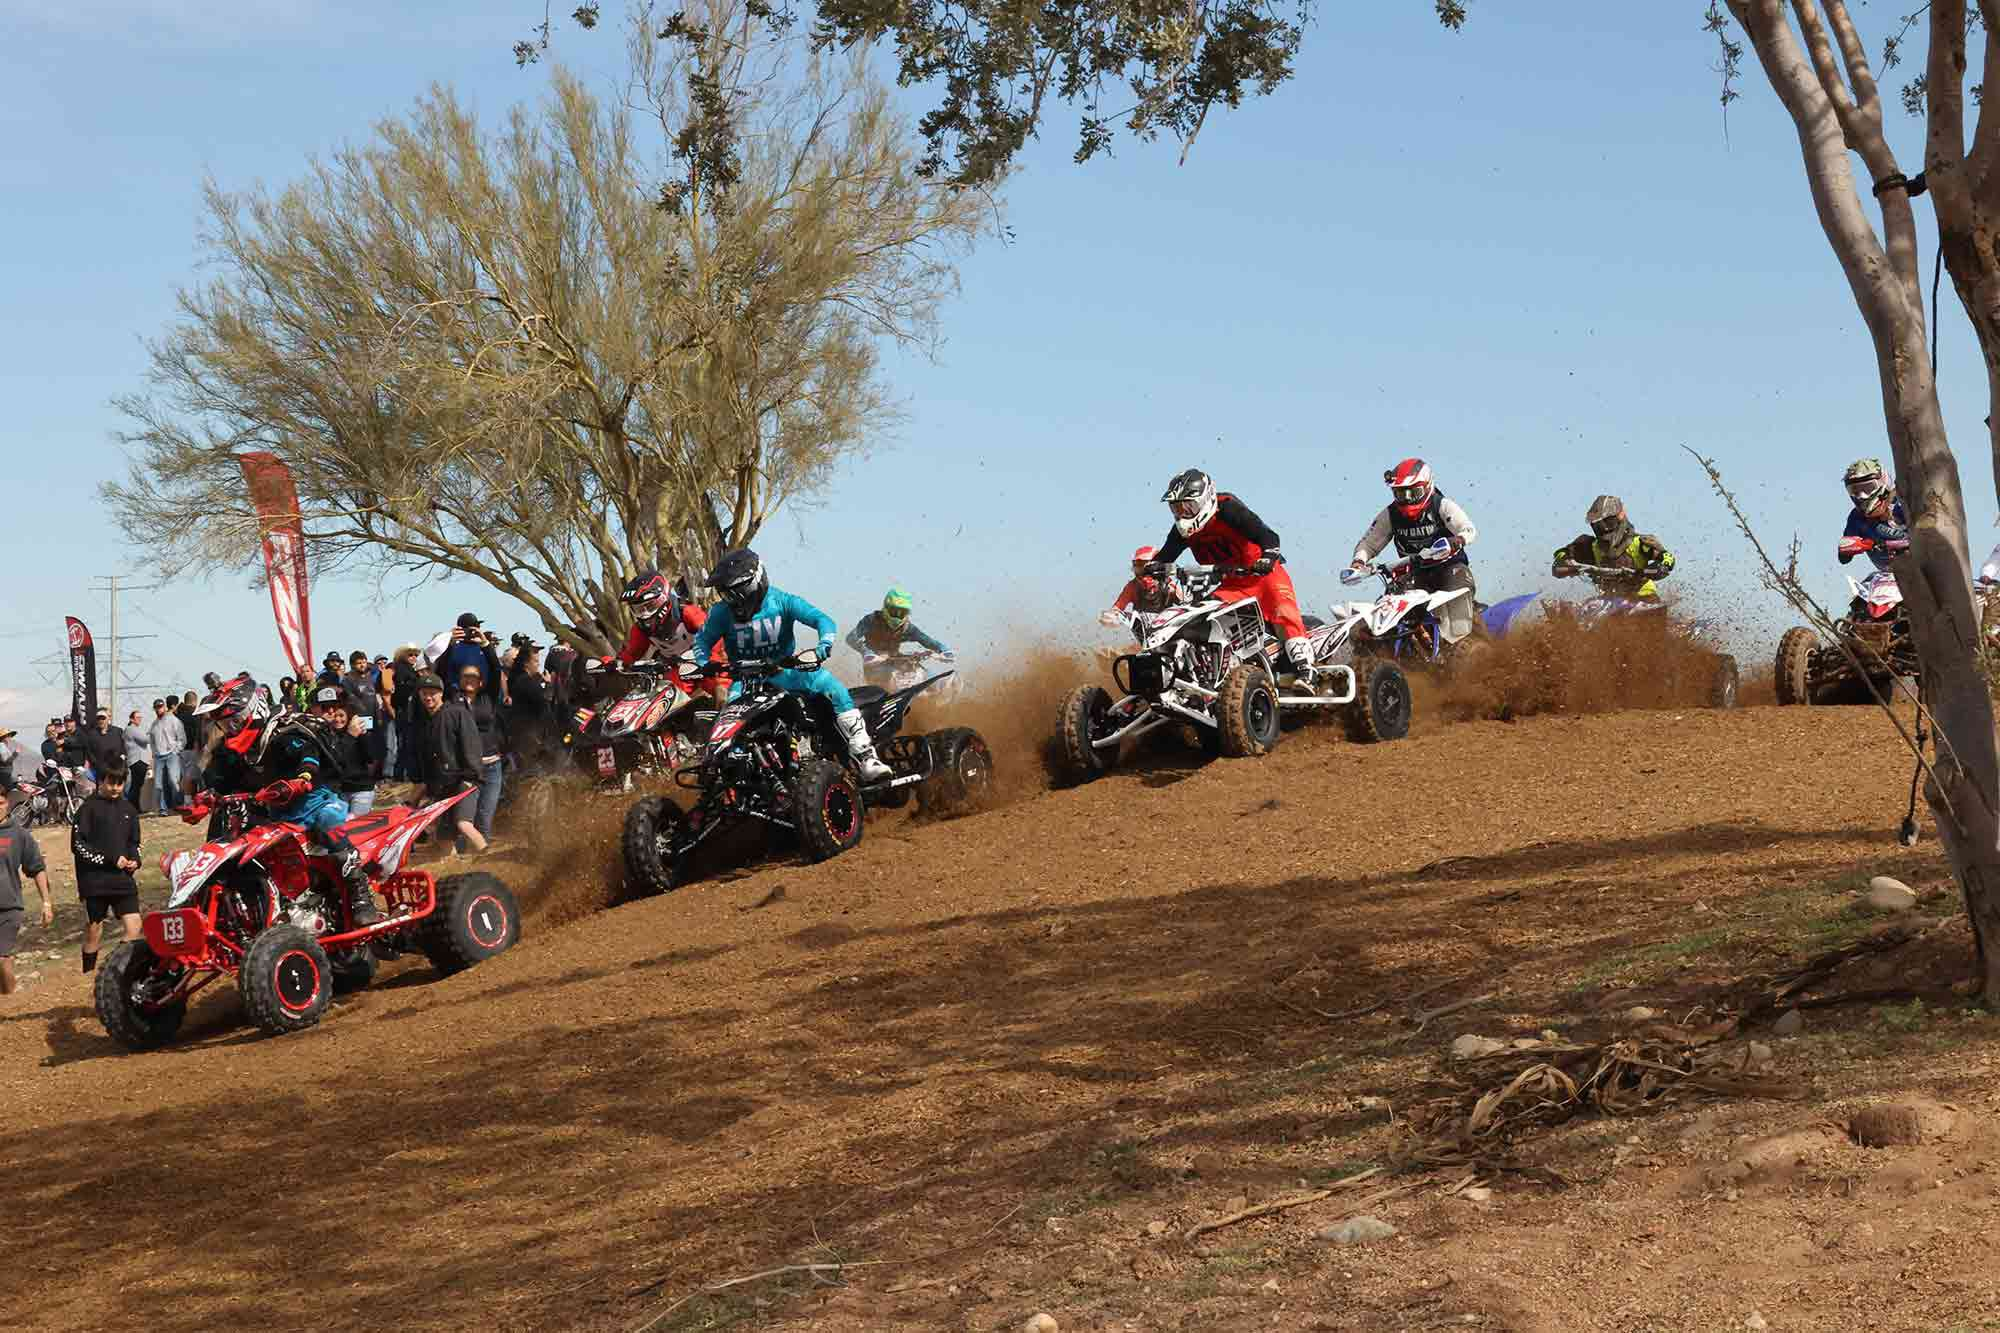 Off-road racing organizations like WORCS are seeing an increase in adult and youth ATV race entries.